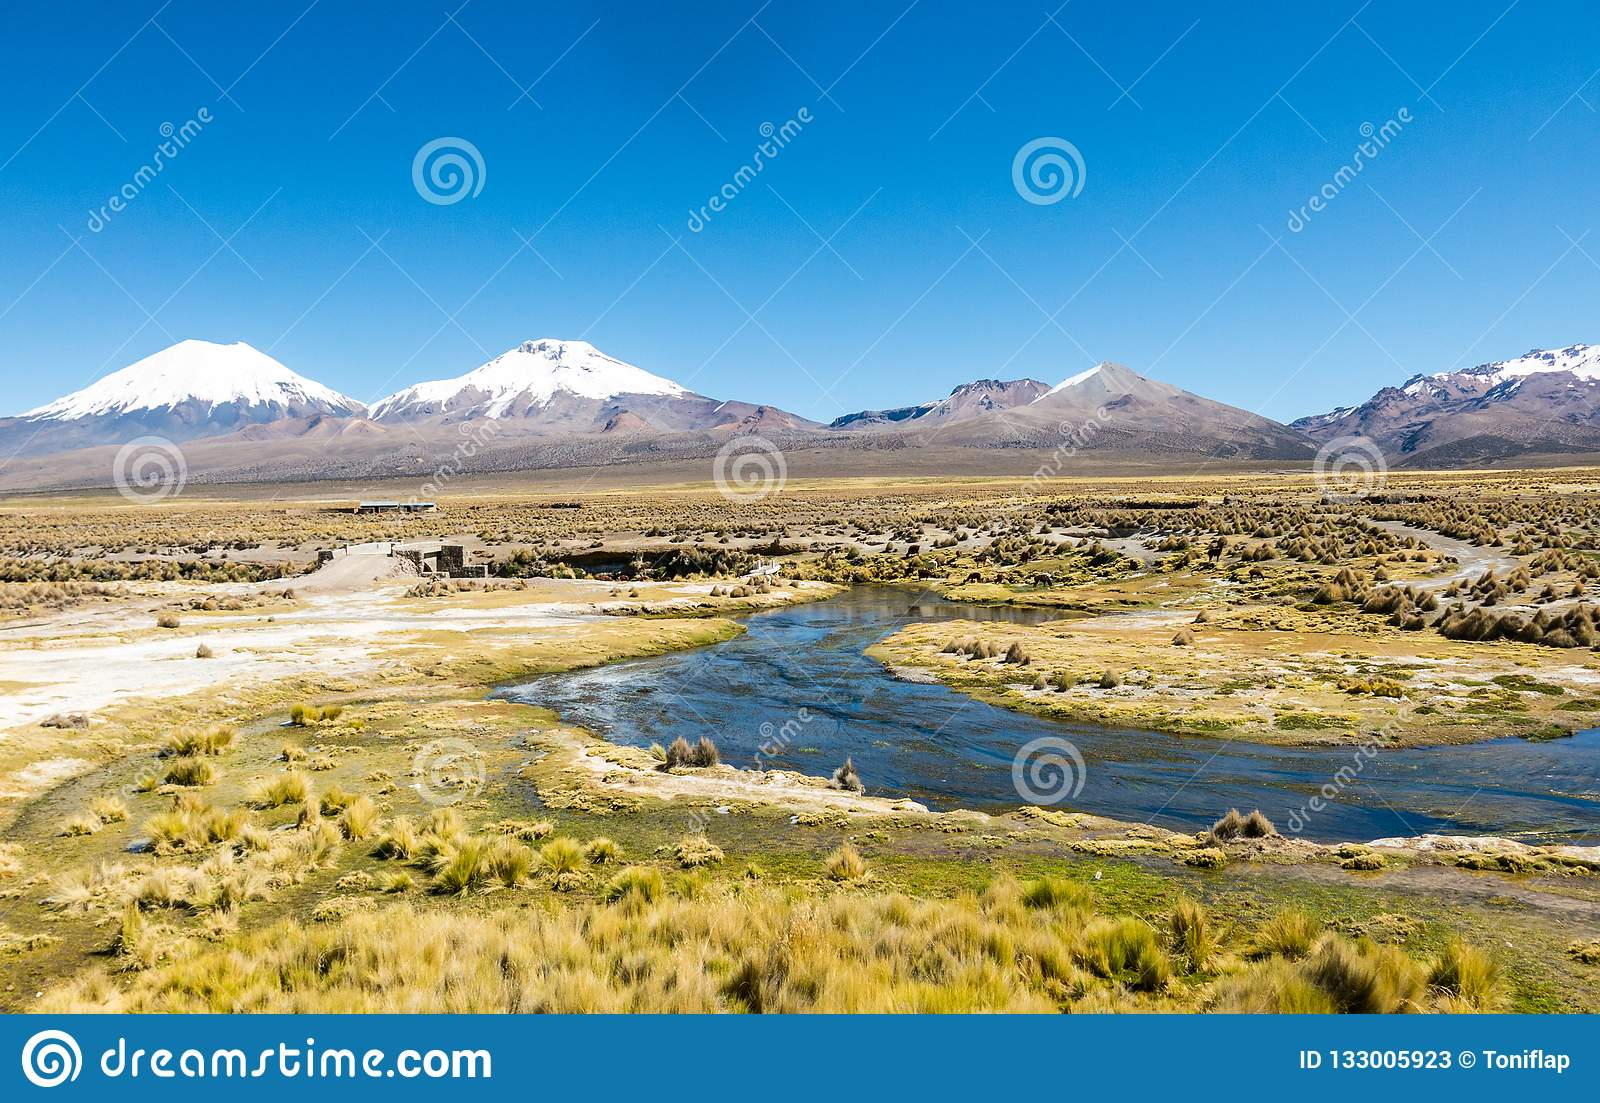 High Andean tundra landscape in the mountains of the Andes